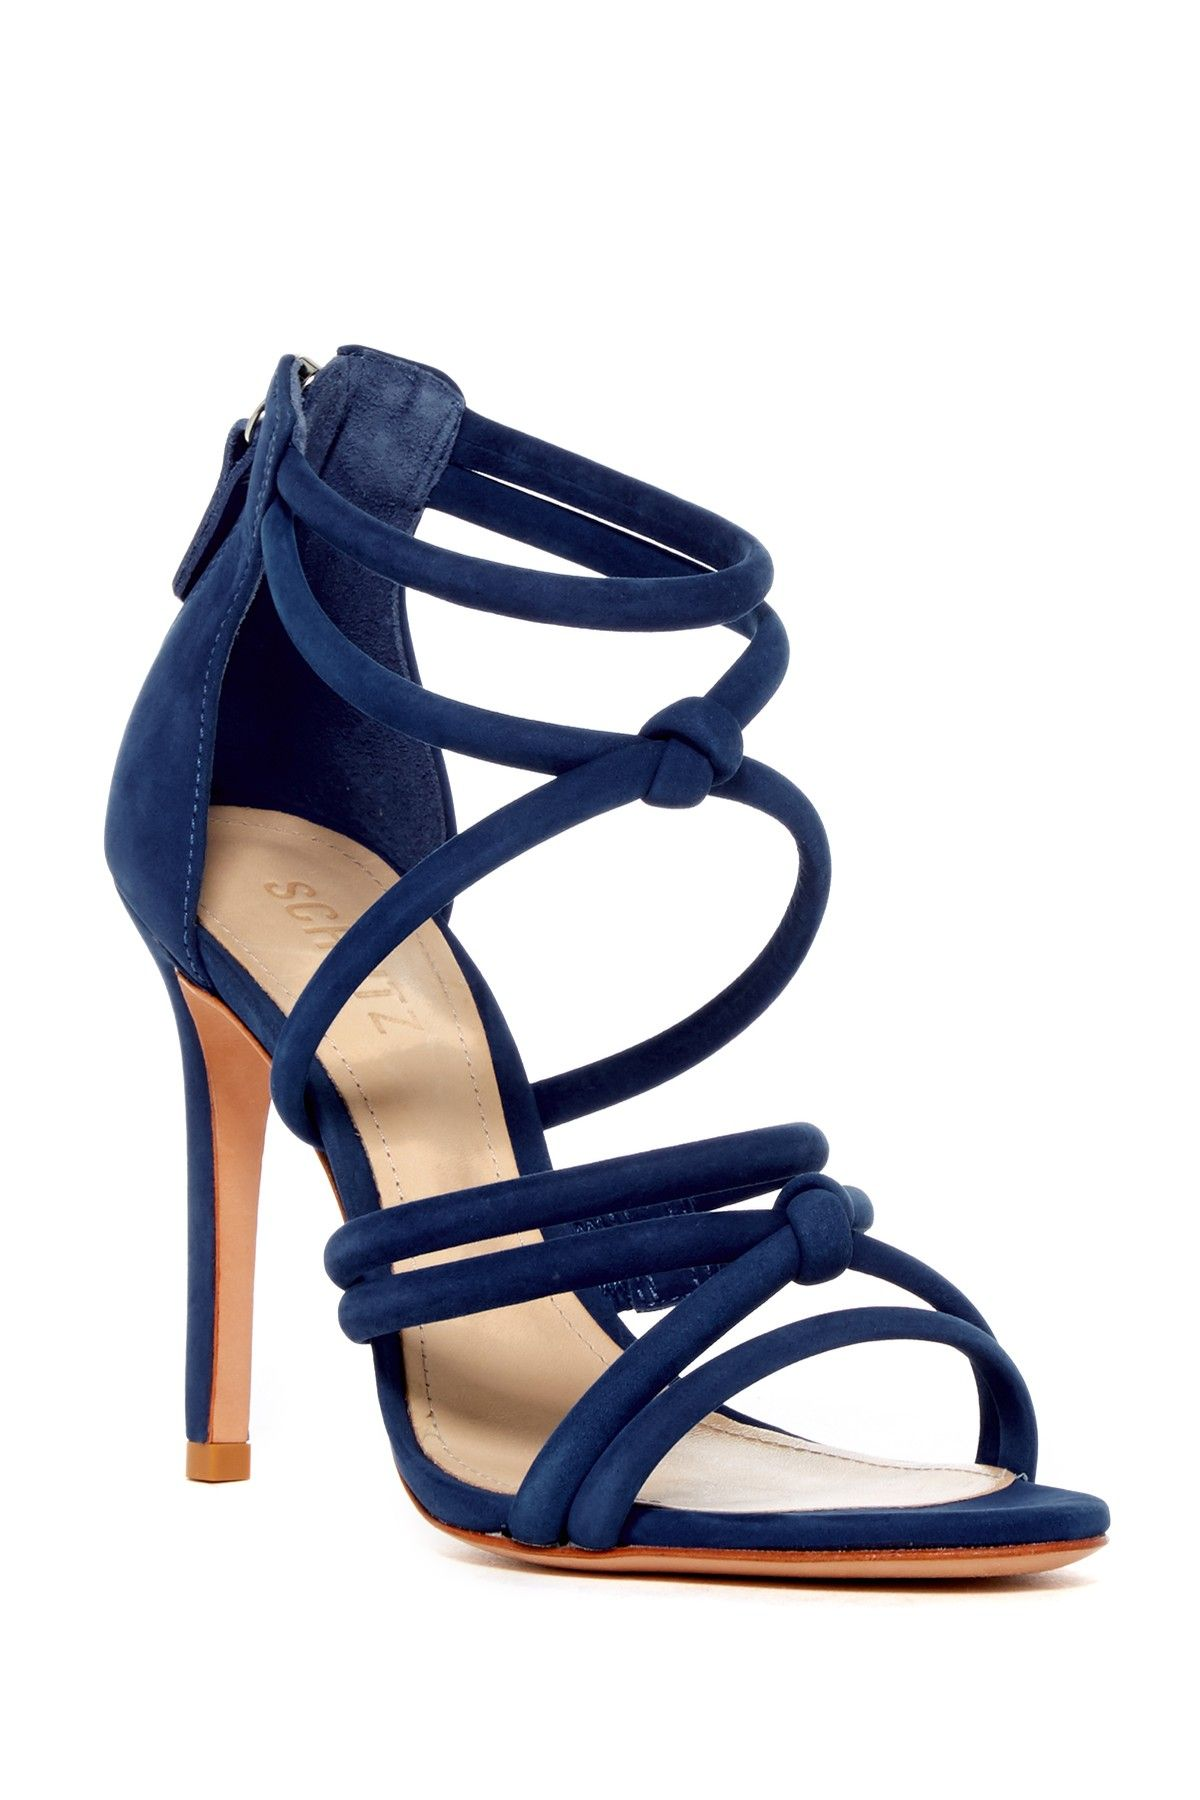 Best 25+ Navy blue strappy heels ideas on Pinterest | Navy ...